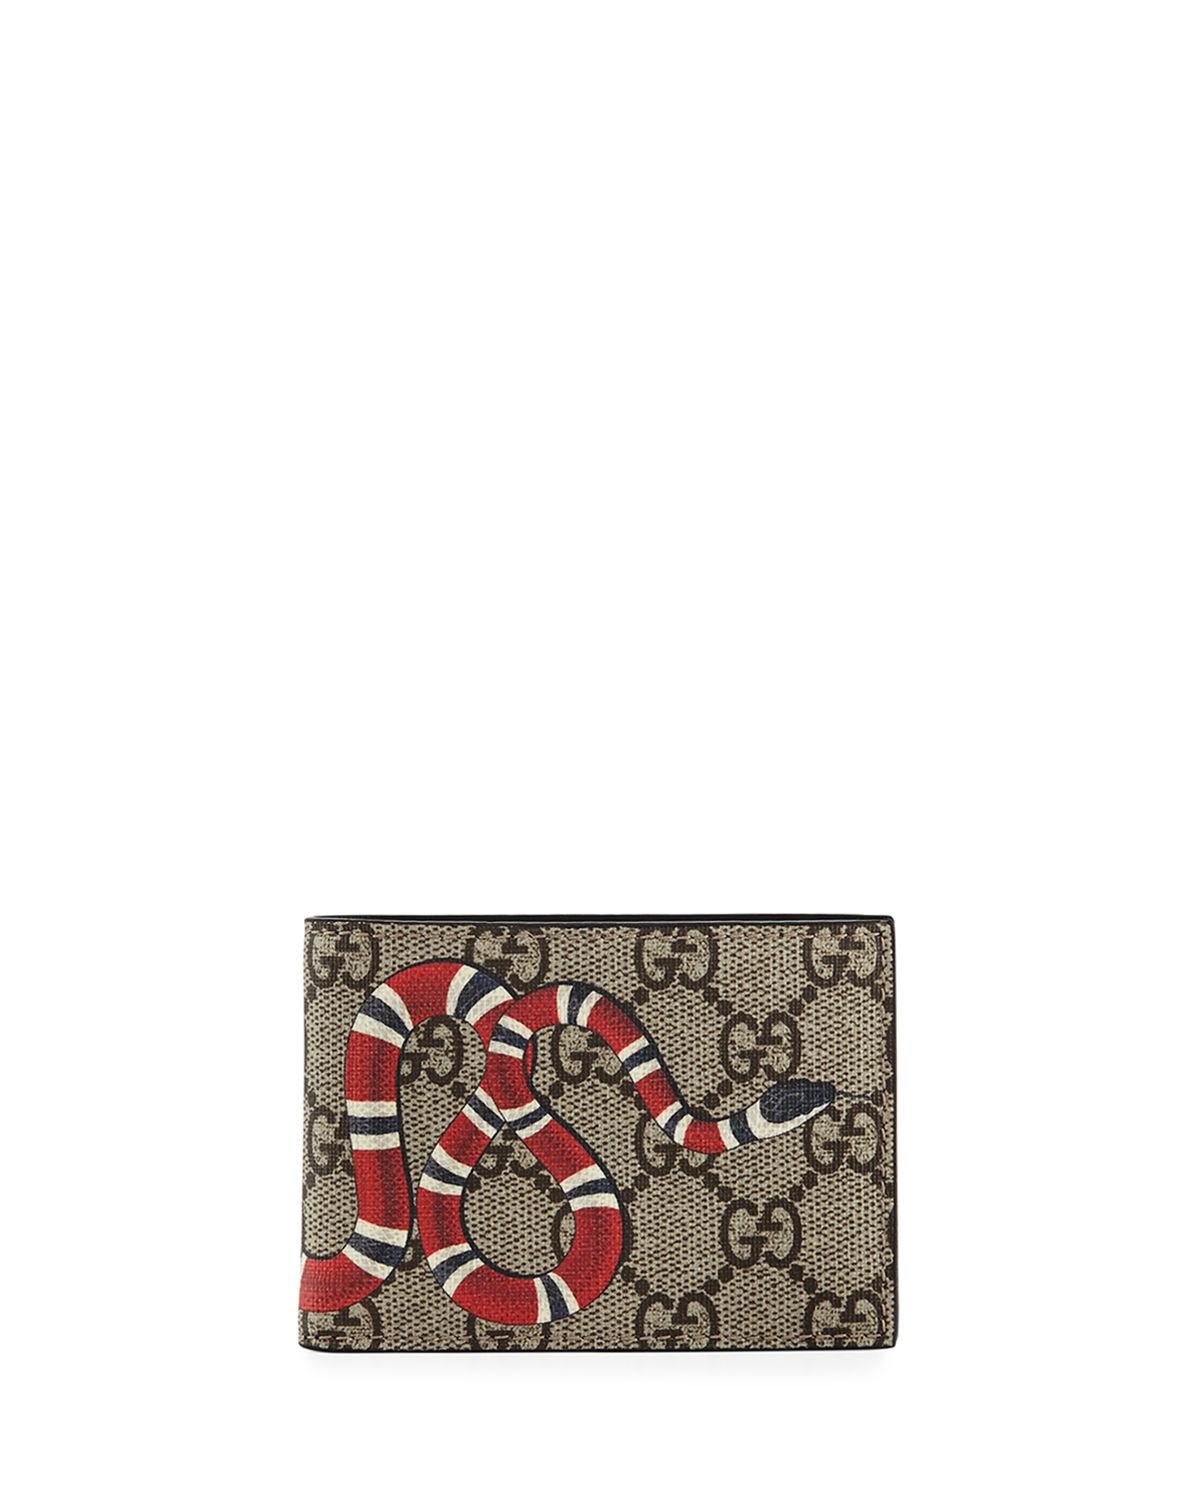 df1f7762919f88 Gucci Snake Printed Coated Canvas Wallet in Natural for Men - Save ...